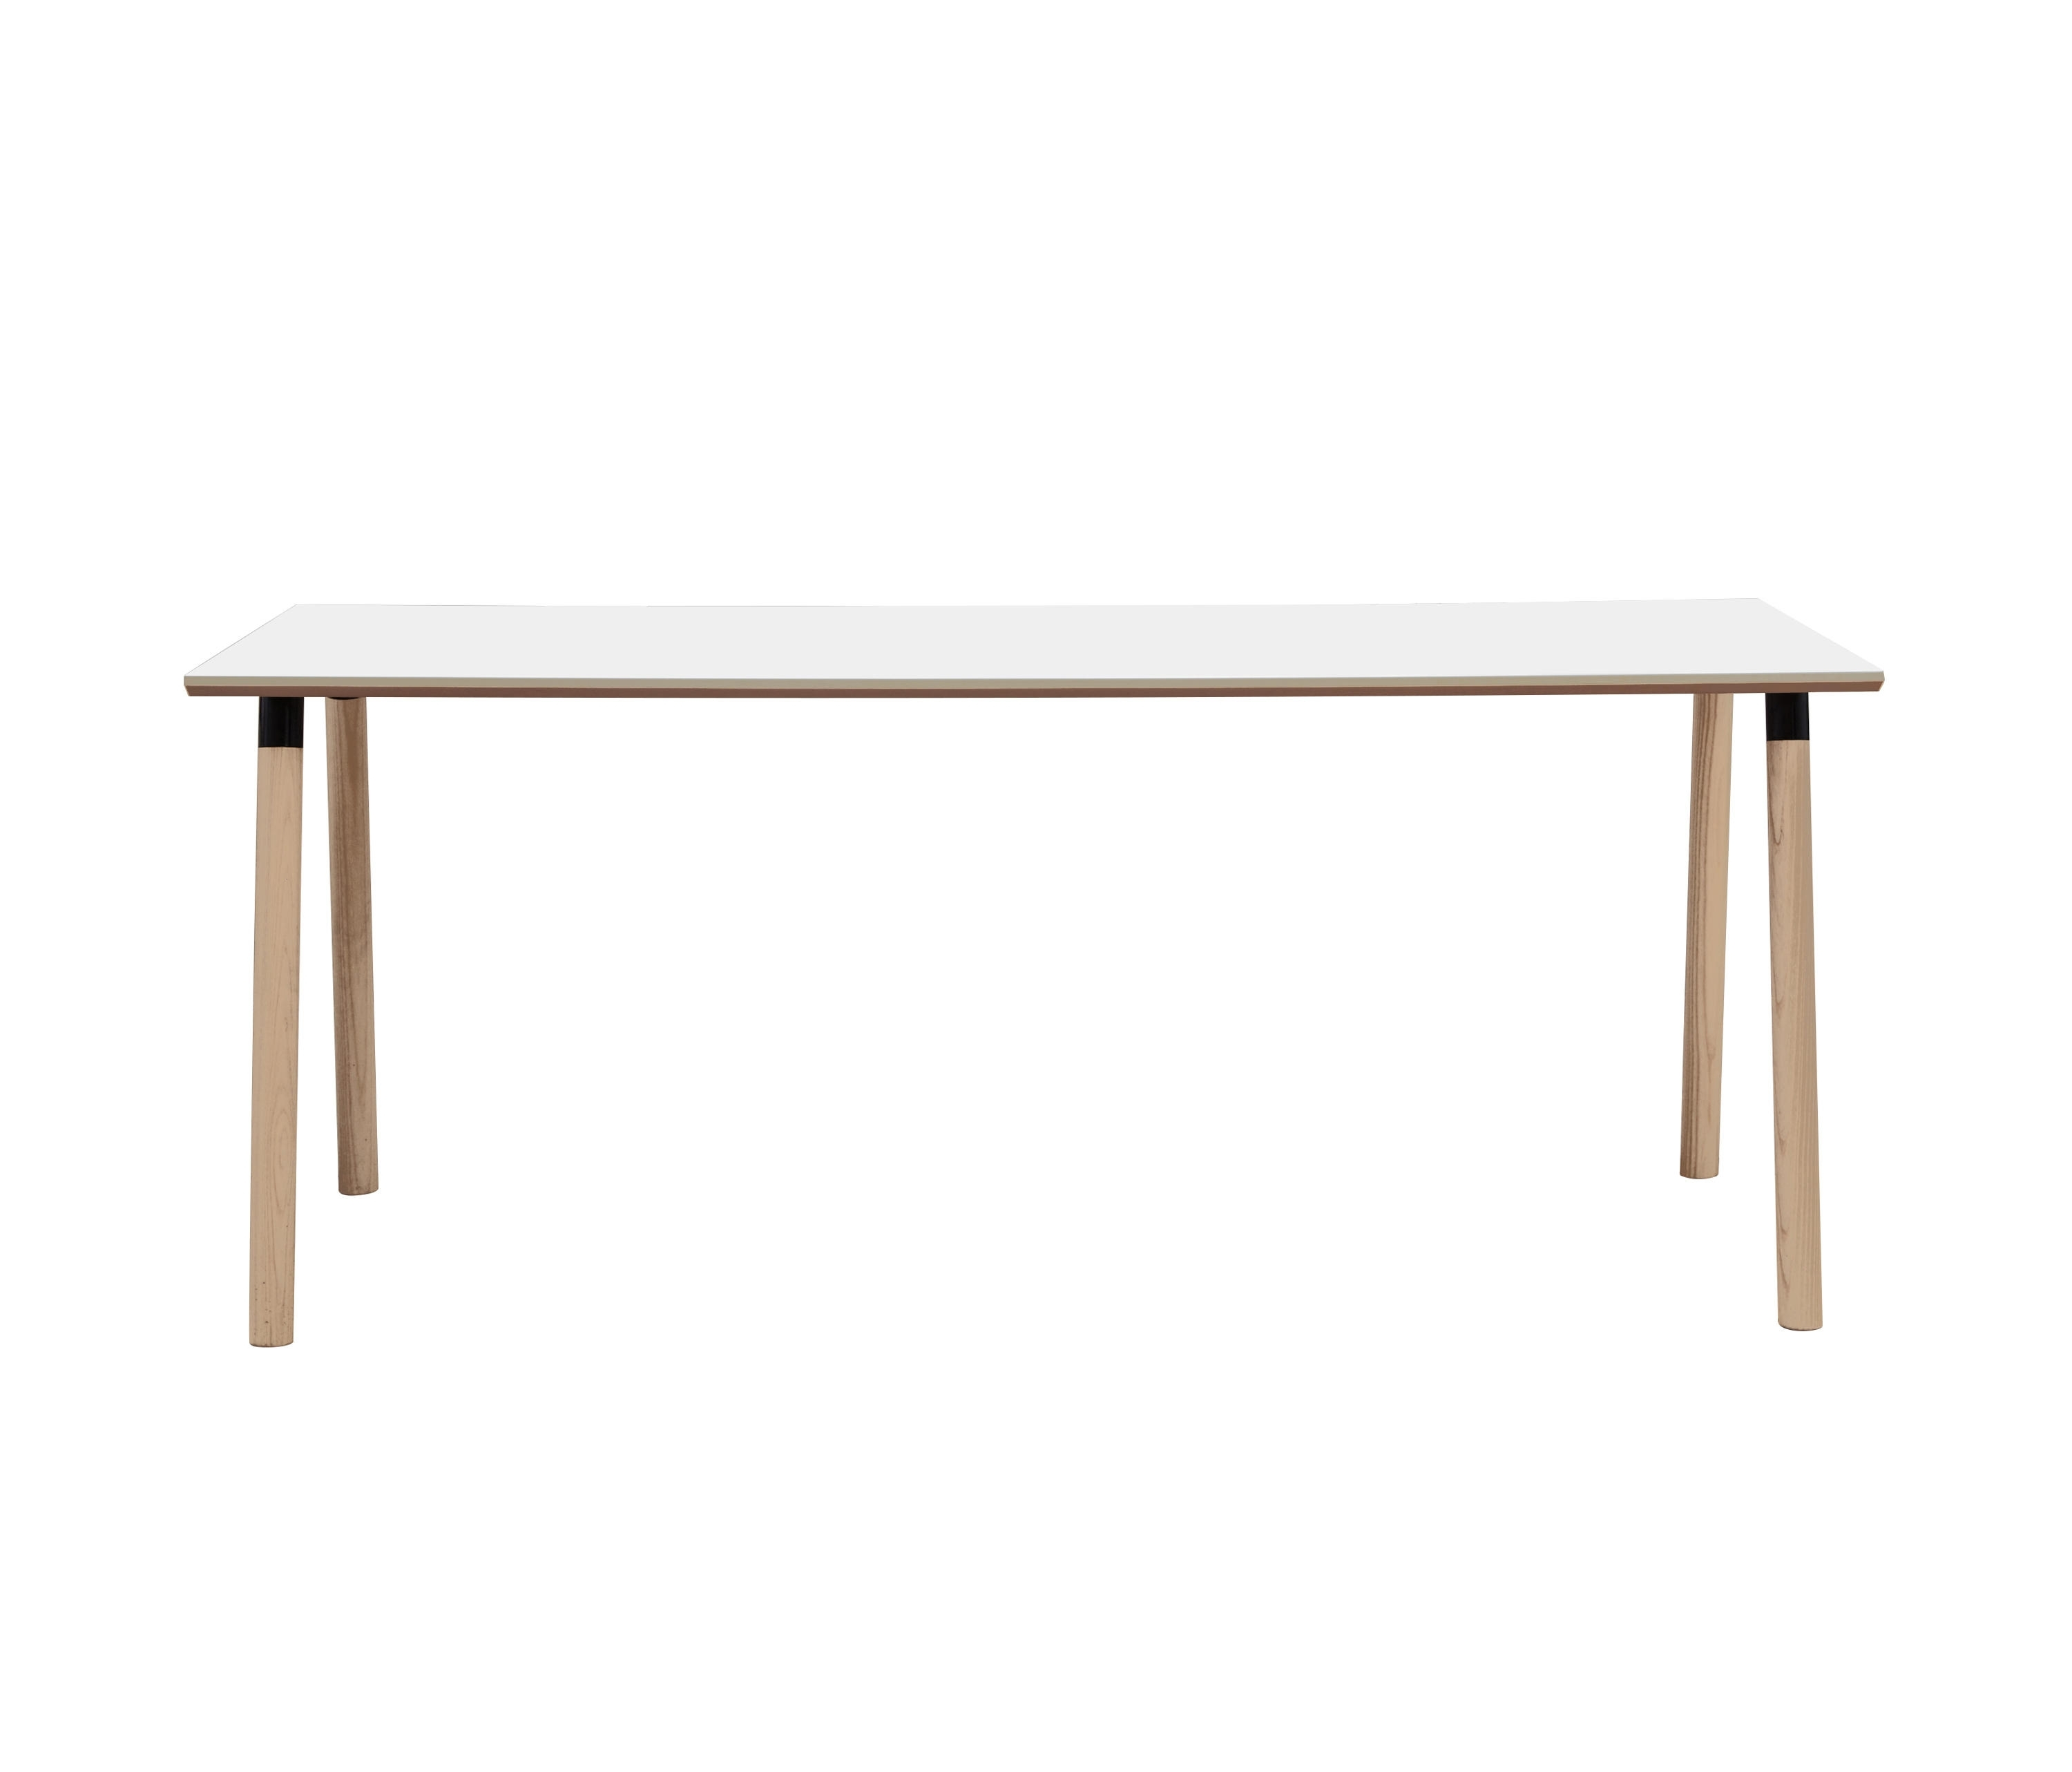 Partridge Desk – Dining Tables From Designbythem | Architonic With Regard To Best And Newest Partridge Dining Tables (Photo 9 of 20)